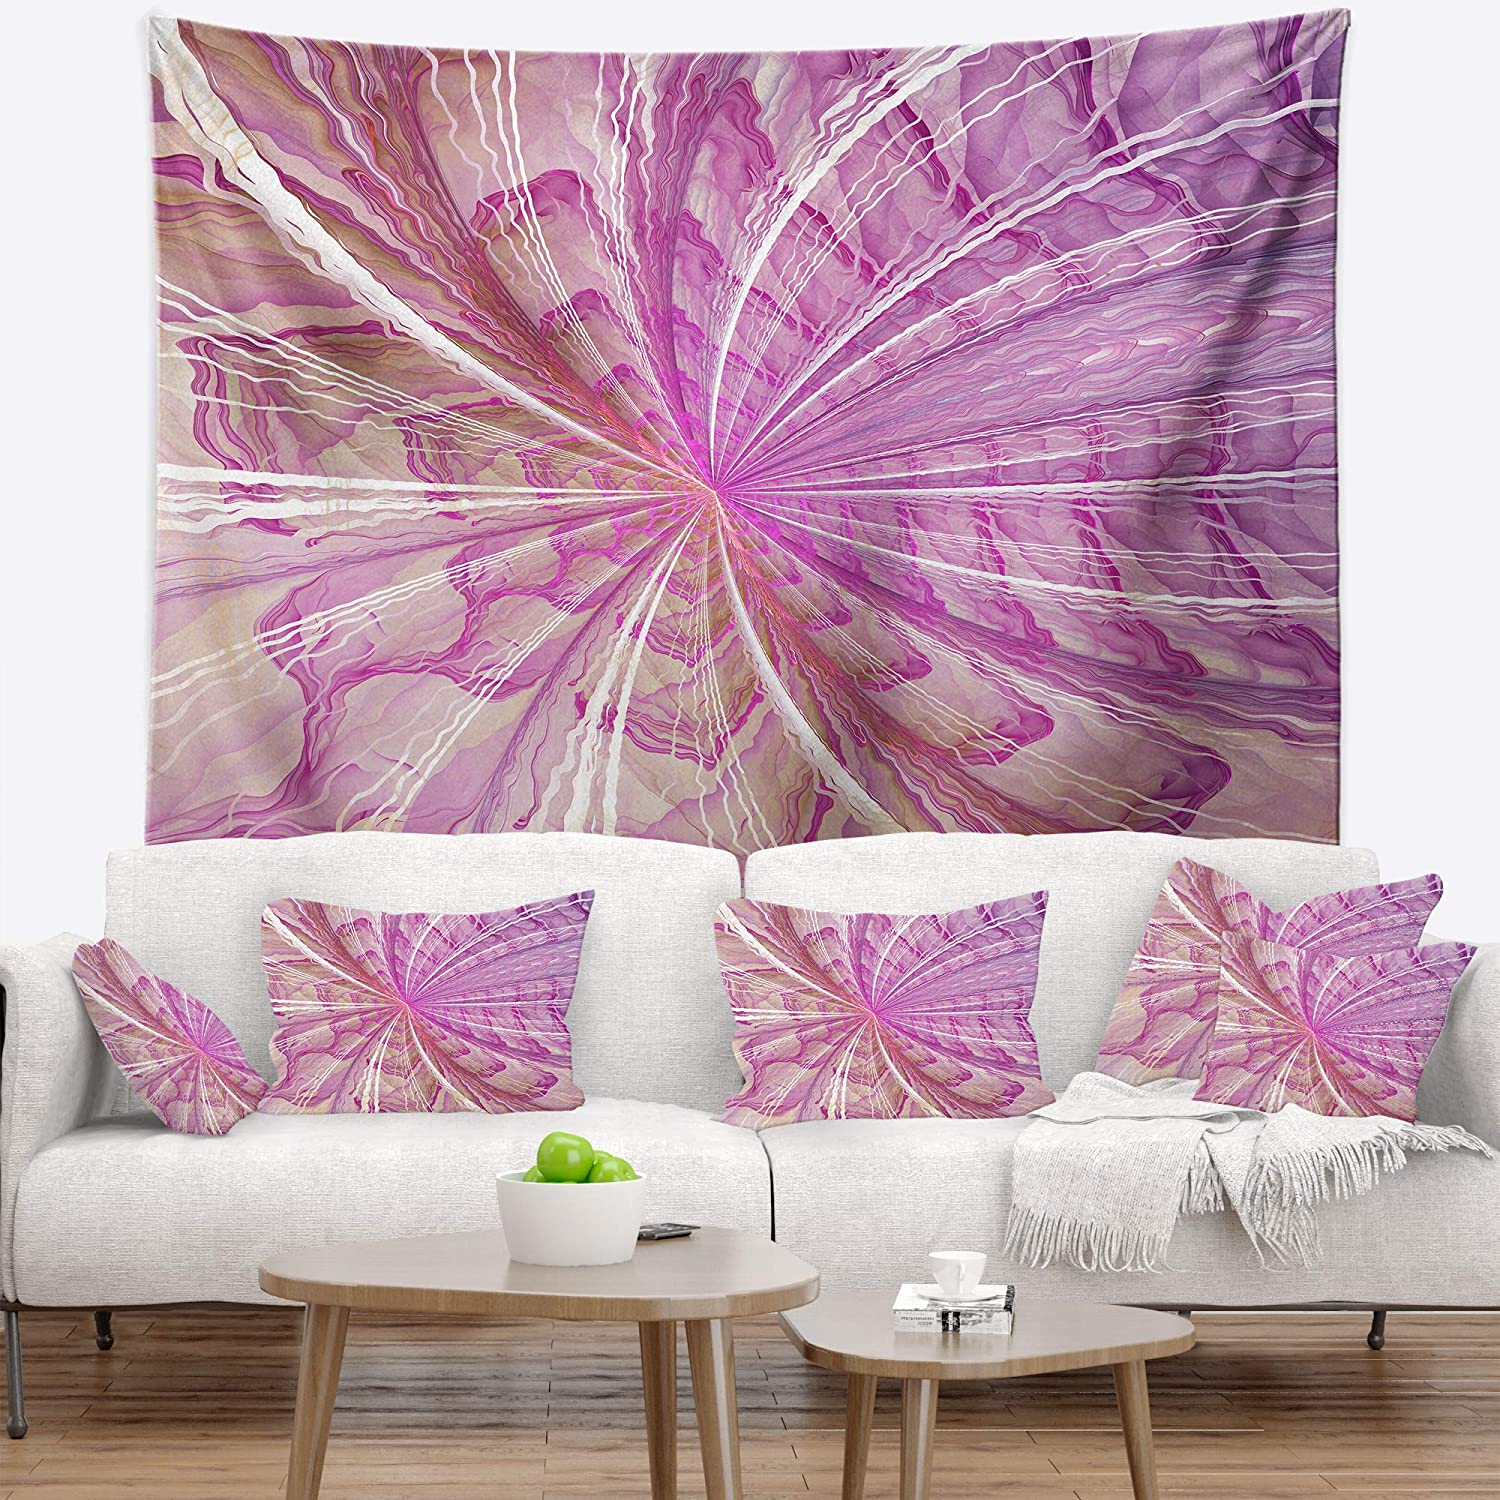 Designart TAP11989-50-60  Symmetrical Light Purple Fractal Flower Floral Blanket D/écor Art for Home and Office Wall Tapestry Large 50 x 60